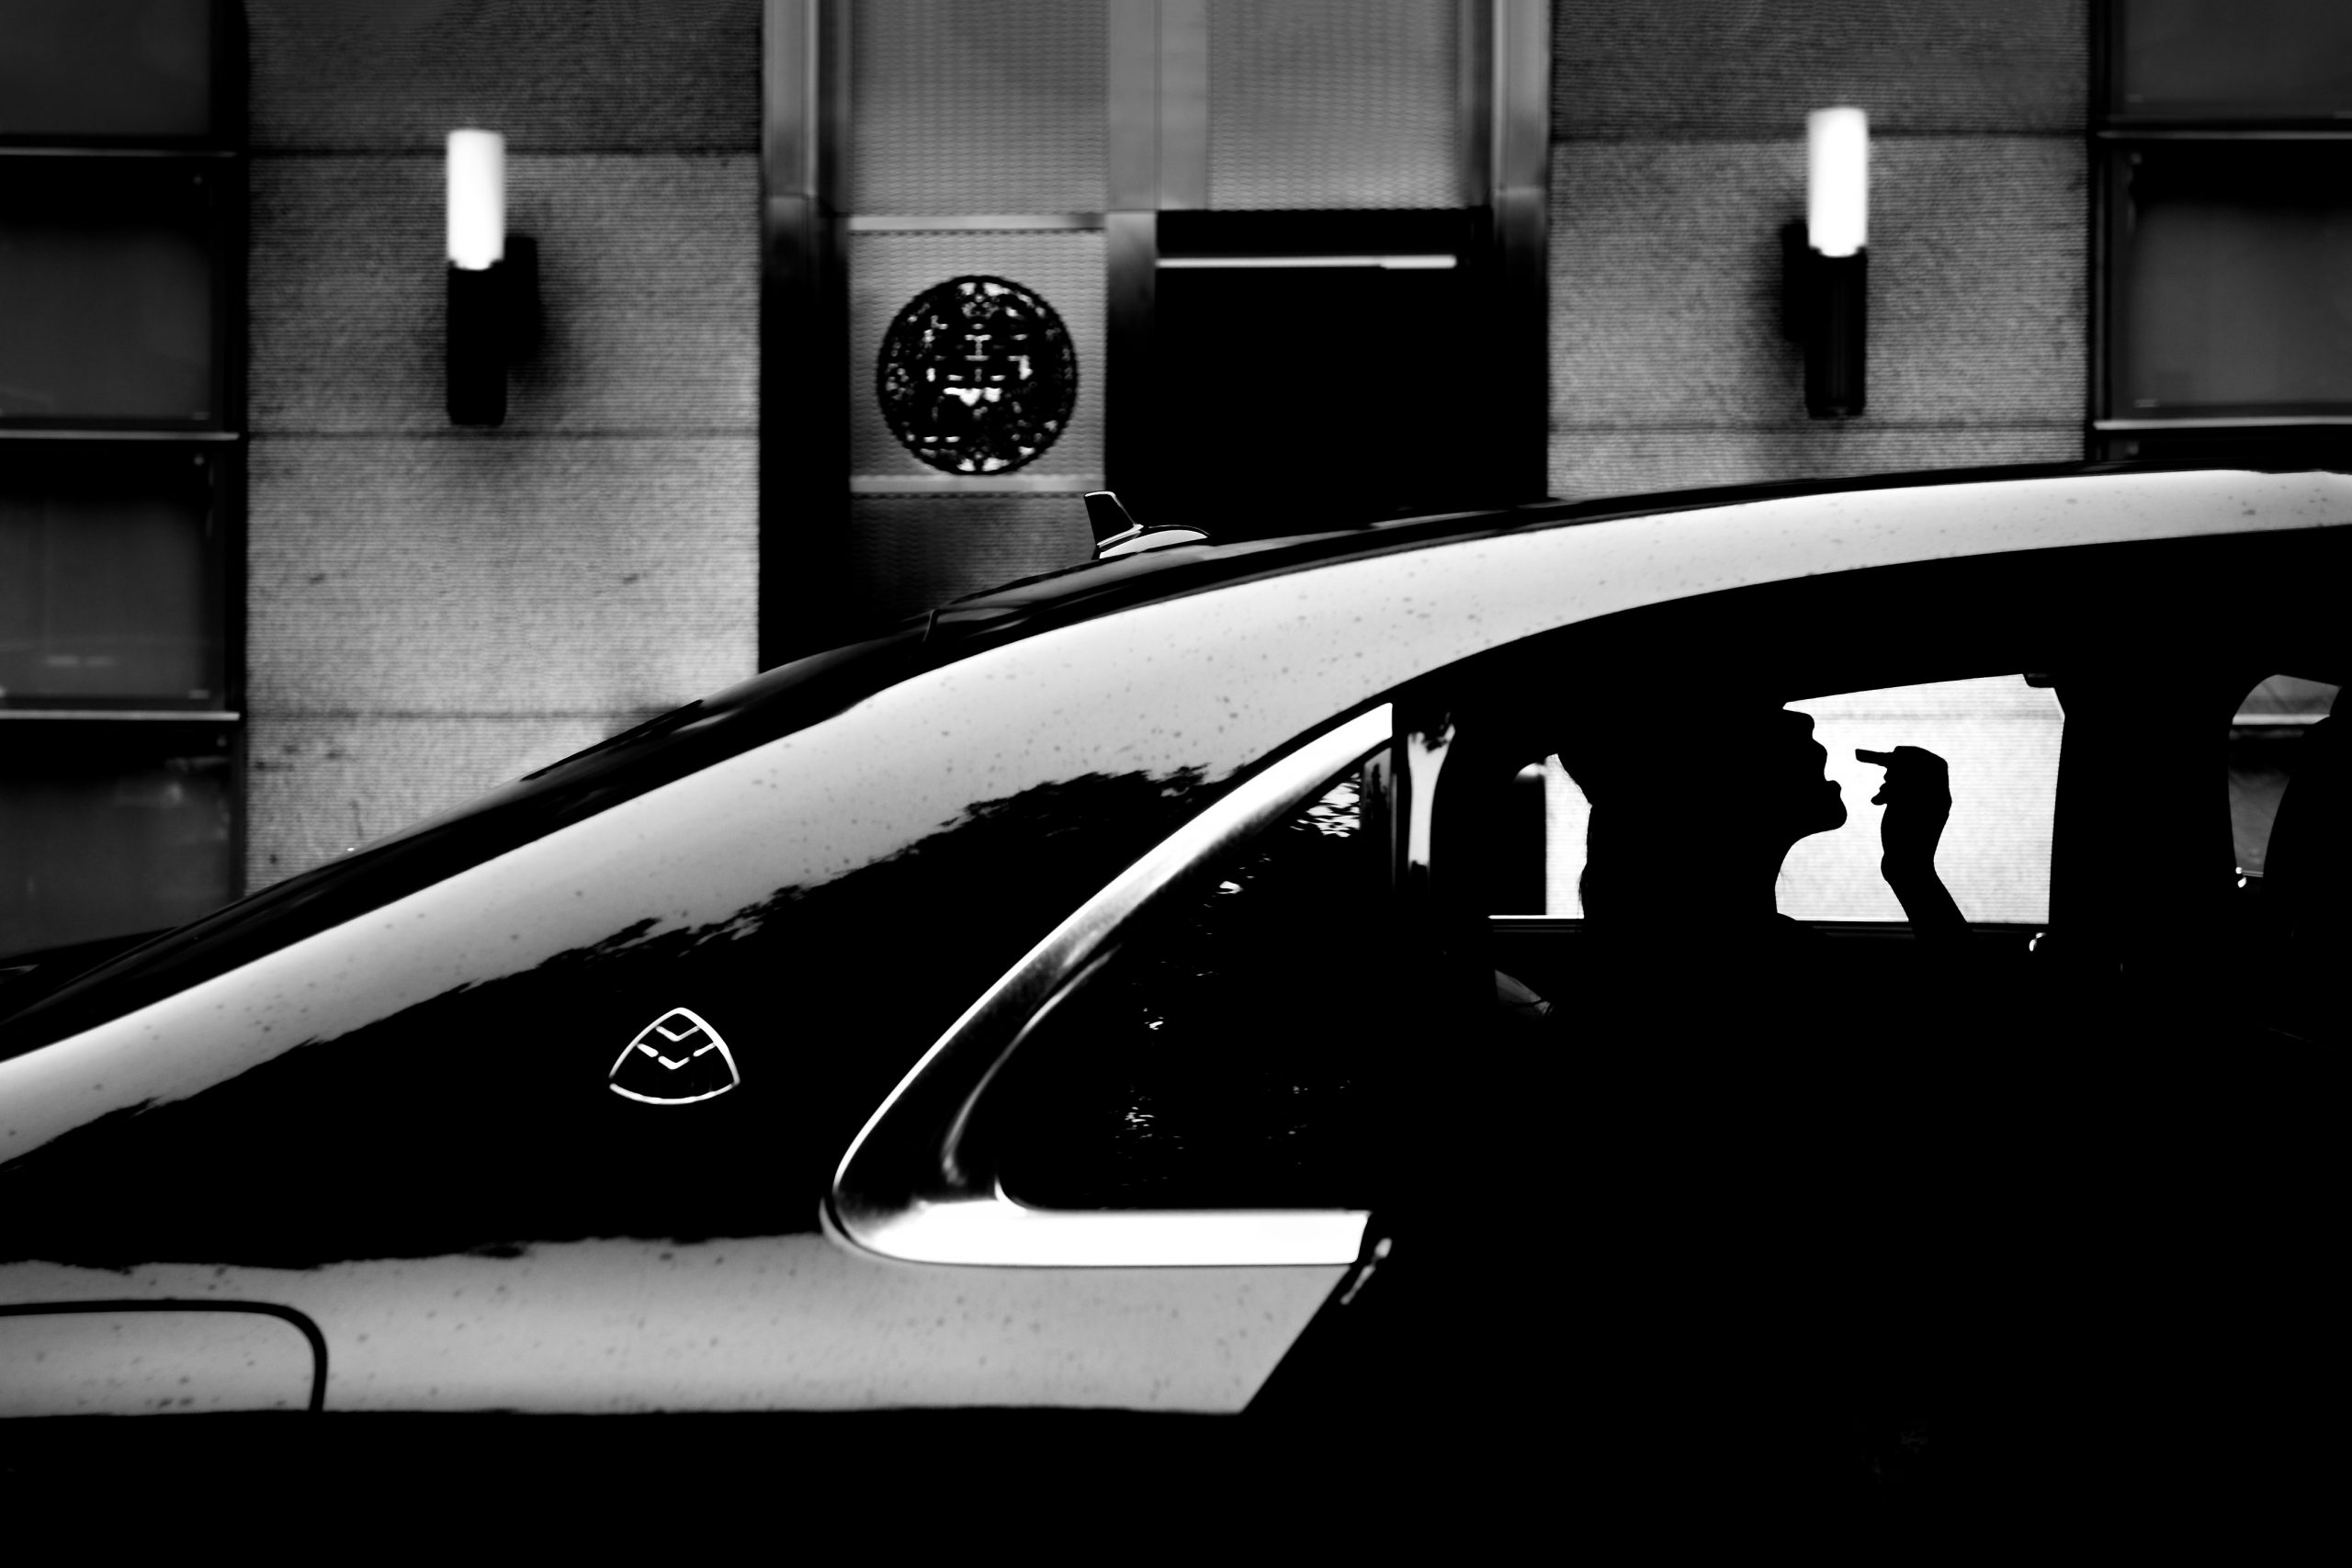 Silhouette of women applying makeup in a car